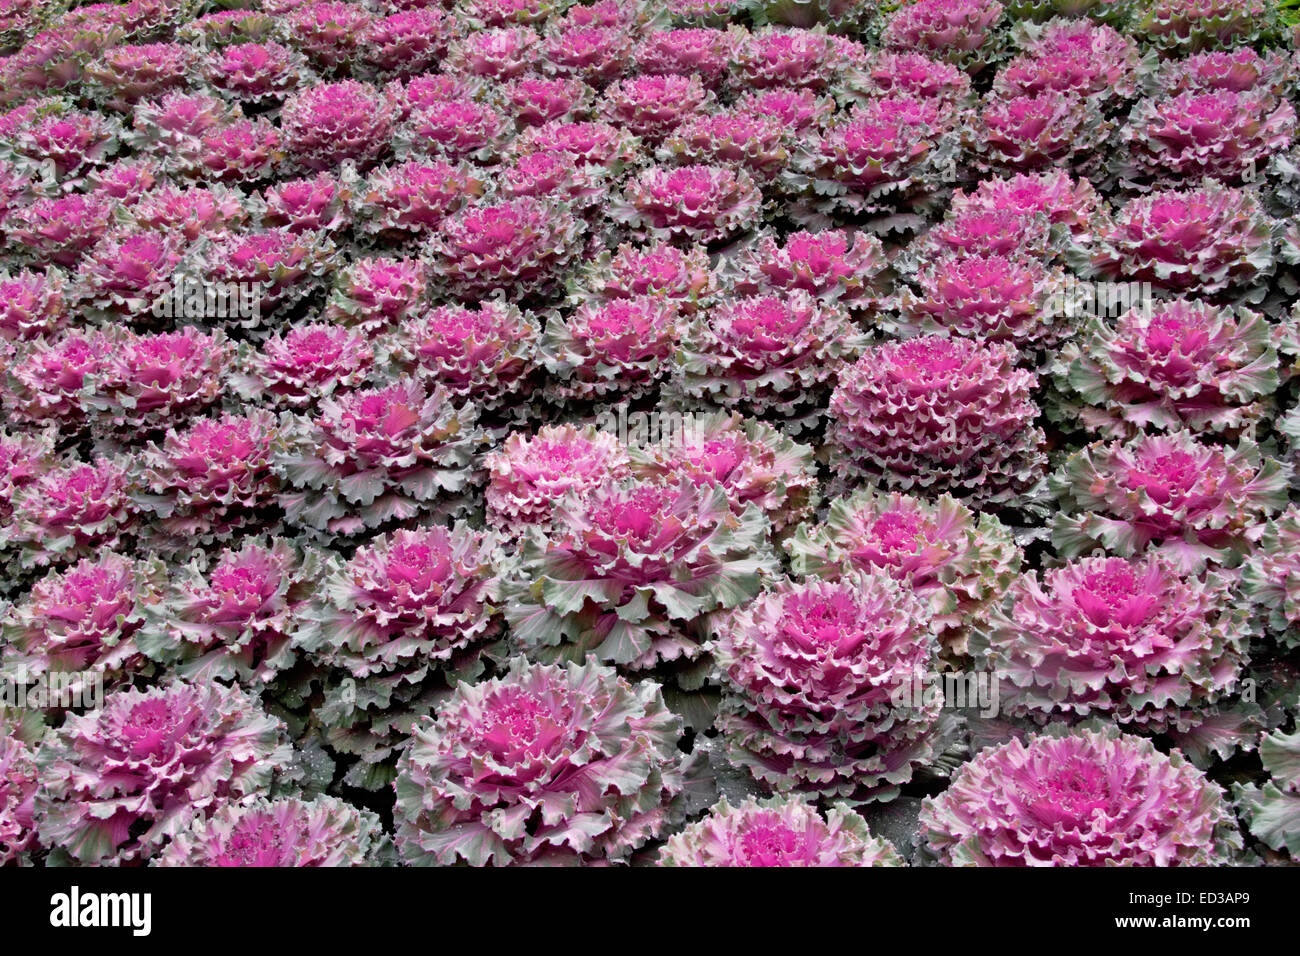 decorative mass planting of ornamental kale cabbage brassica stock photo 76906321 alamy. Black Bedroom Furniture Sets. Home Design Ideas